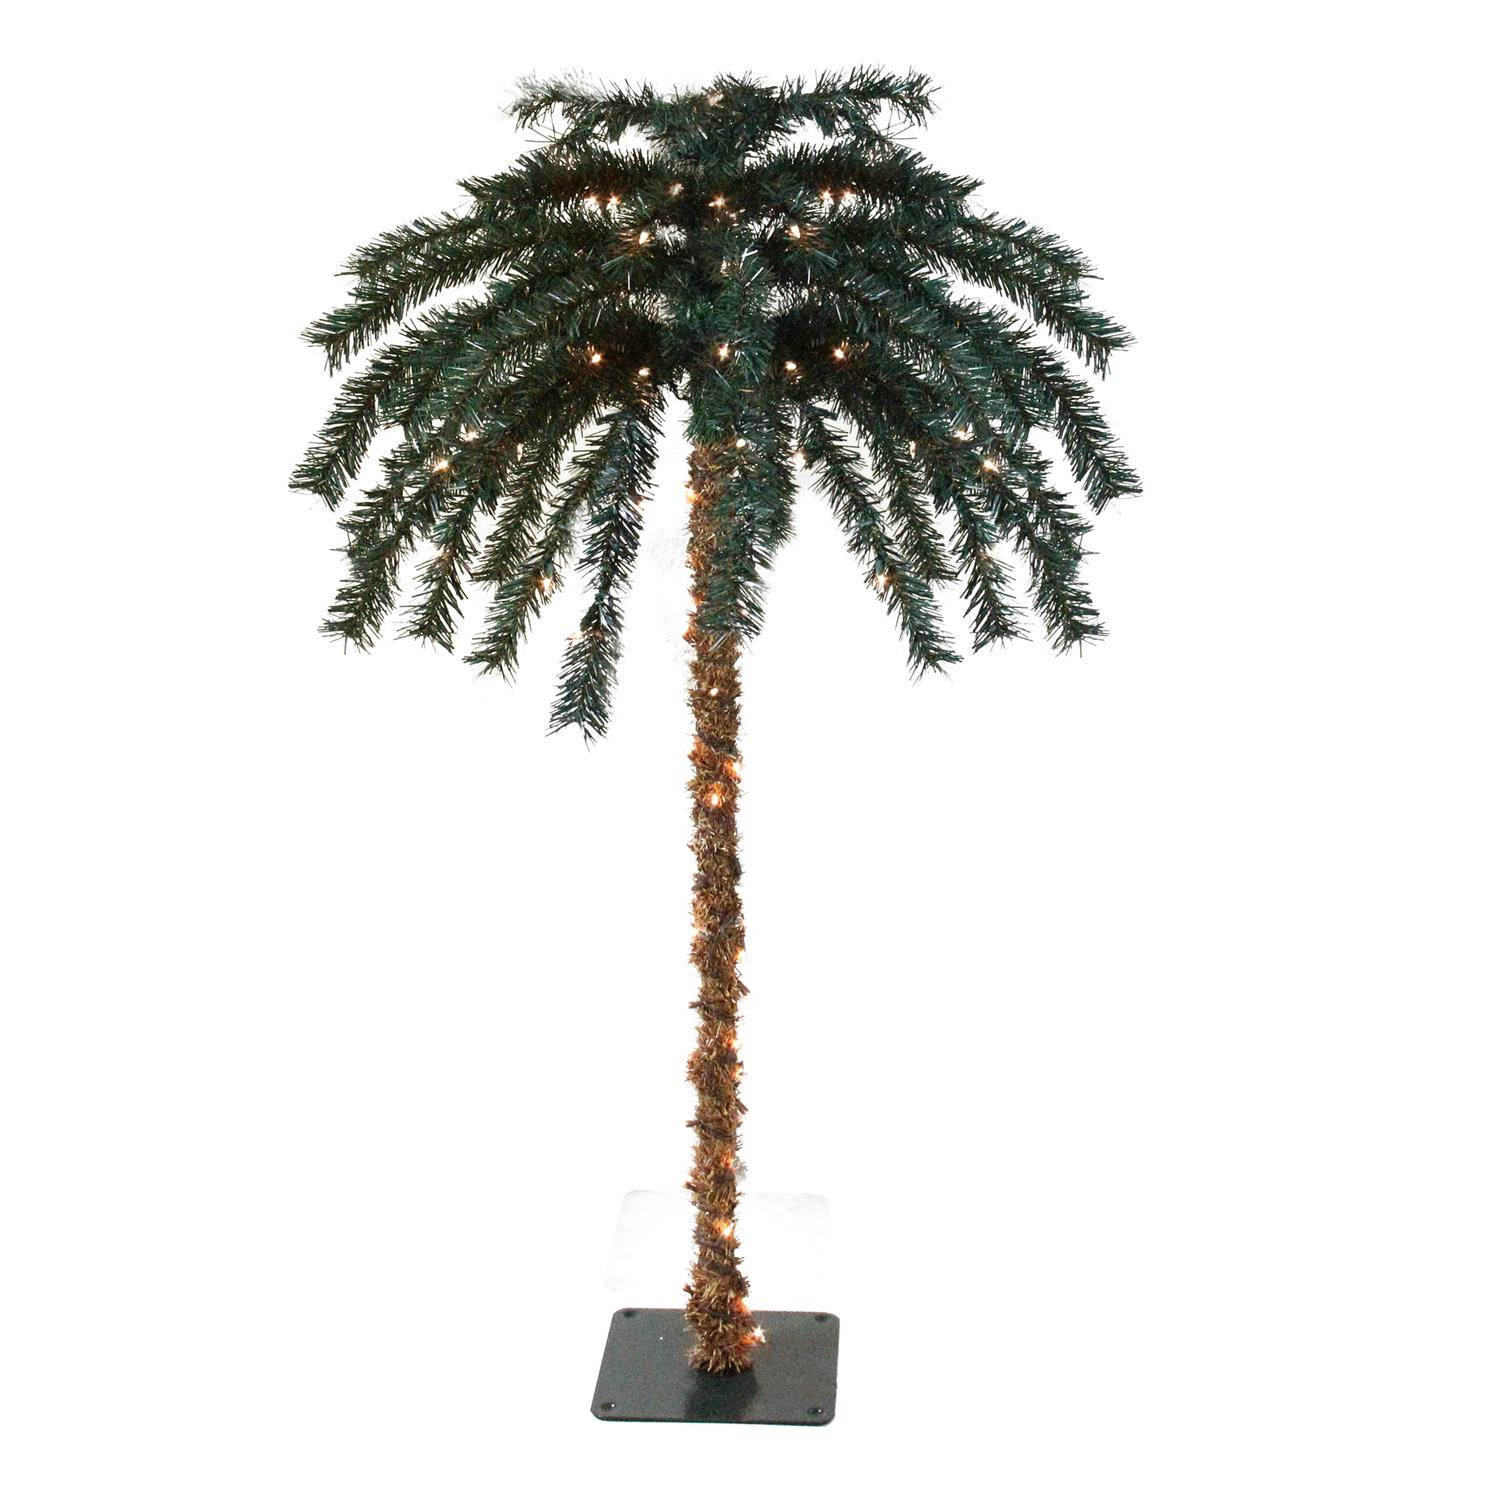 6 39 pre lit tropical outdoor summer patio artificial palm tree clear lights. Black Bedroom Furniture Sets. Home Design Ideas